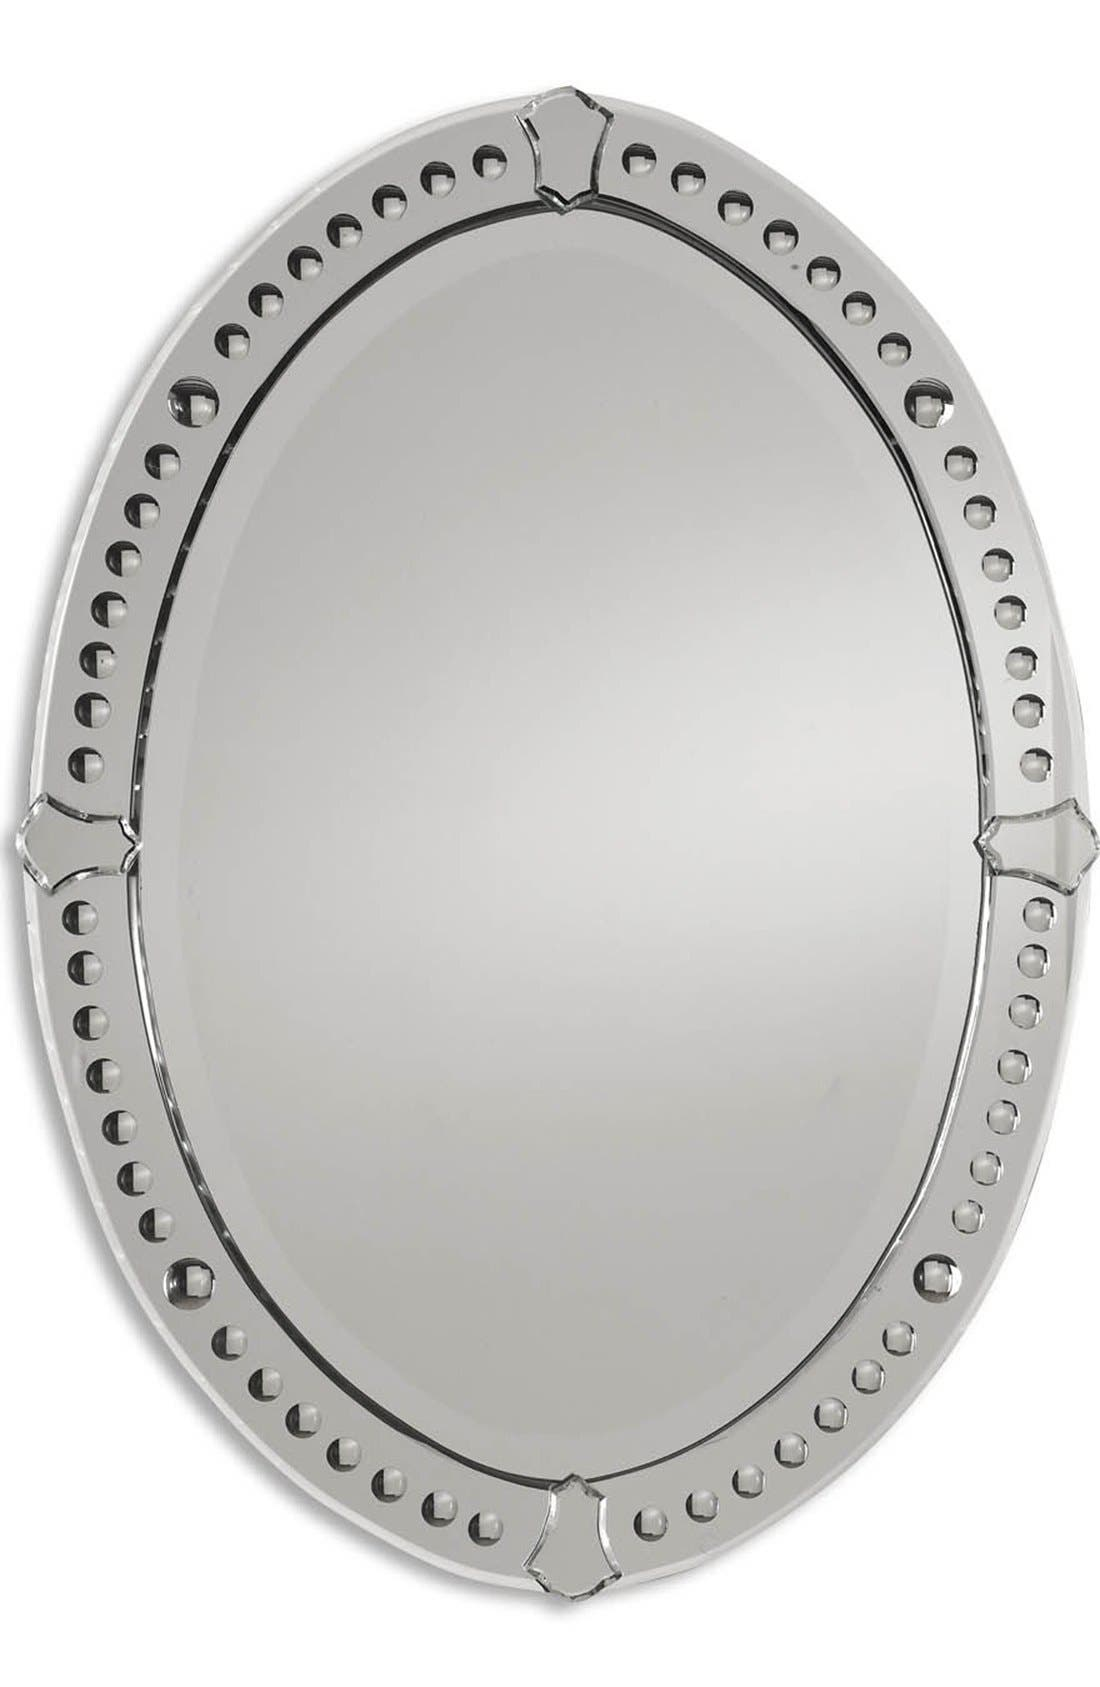 Main Image - Uttermost 'Graziano' Frameless Oval Mirror